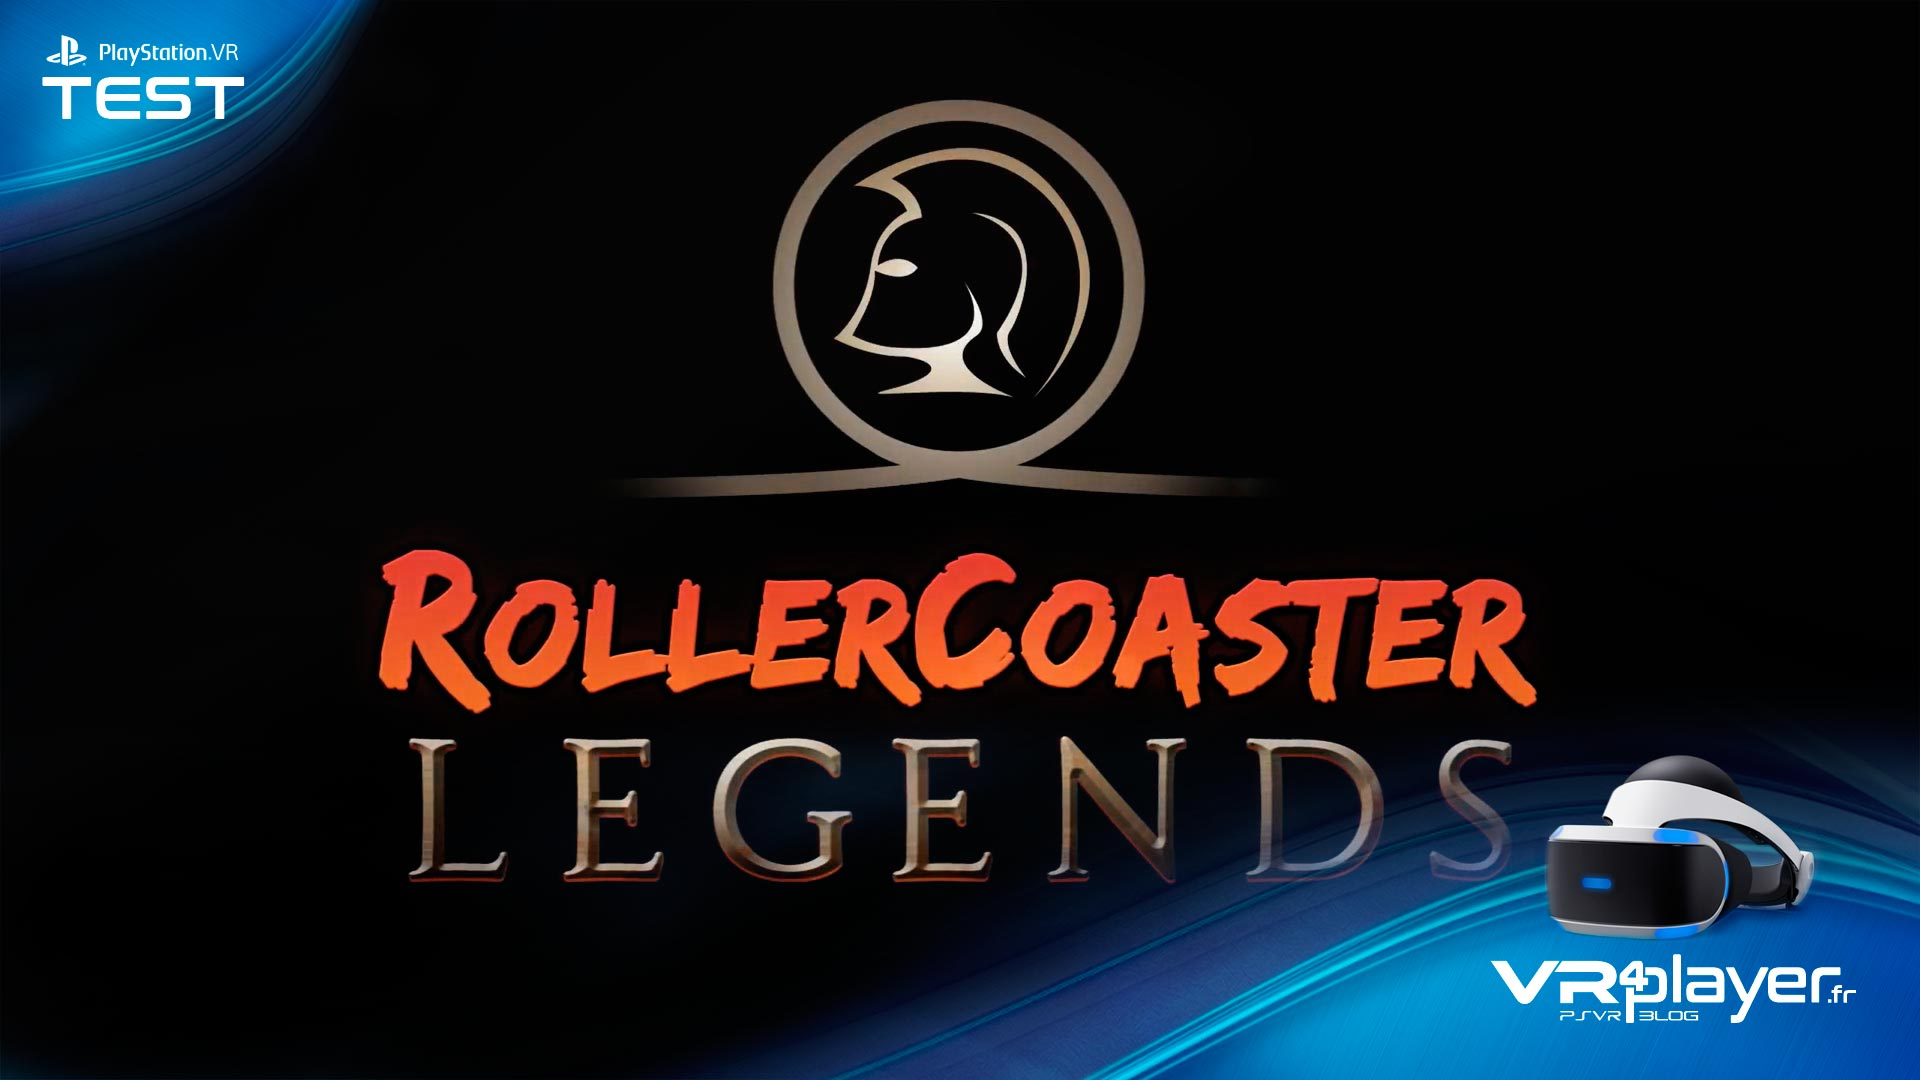 RollerCoaster Legends test reviex VR4player